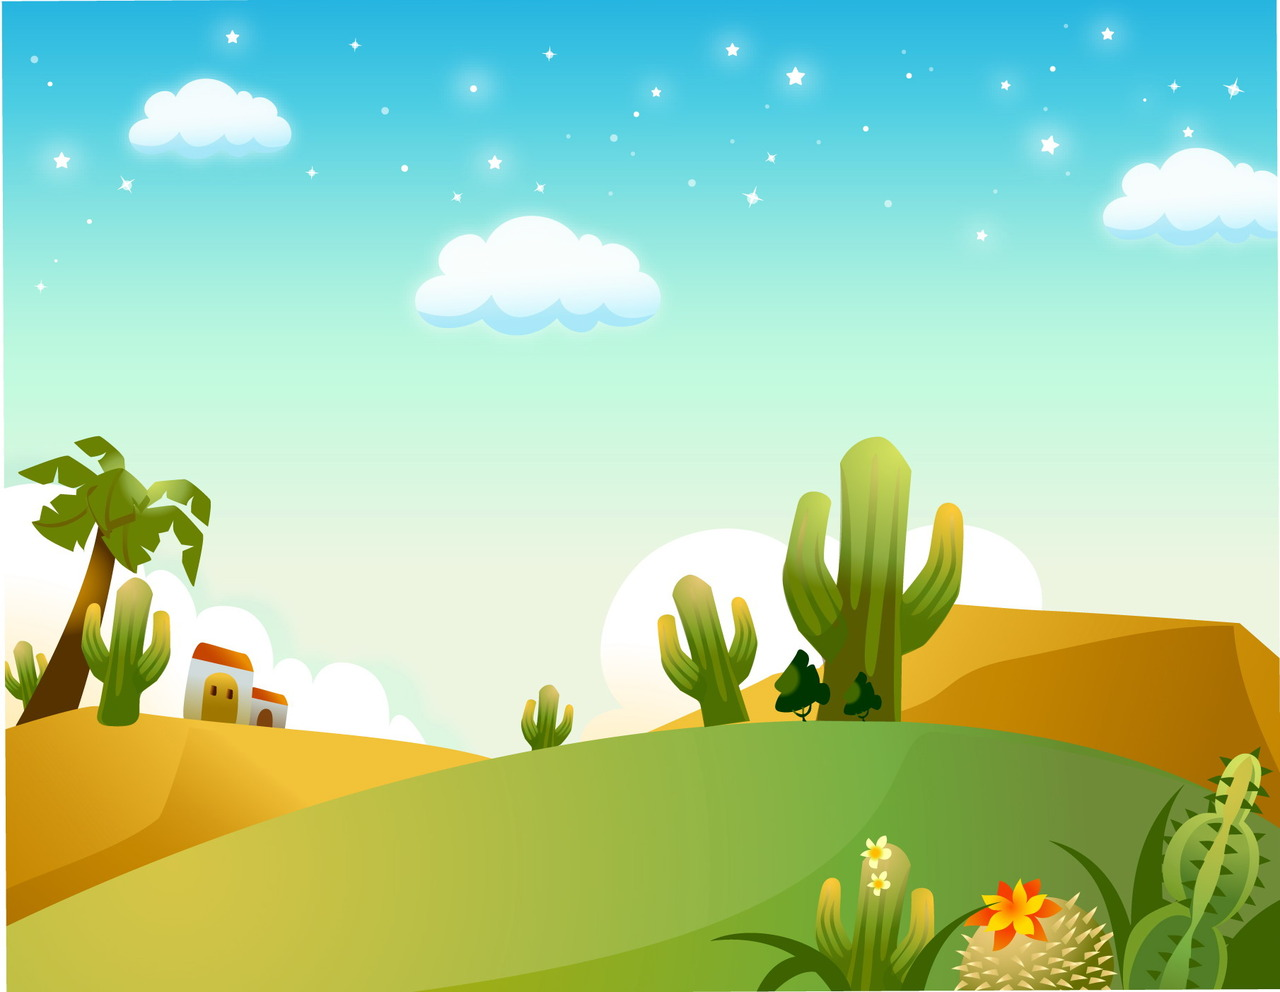 Animated Hd Wallpapers For Laptop Hd Wallpapers Fine Amazing Cartoon Hd Wallpaper Free